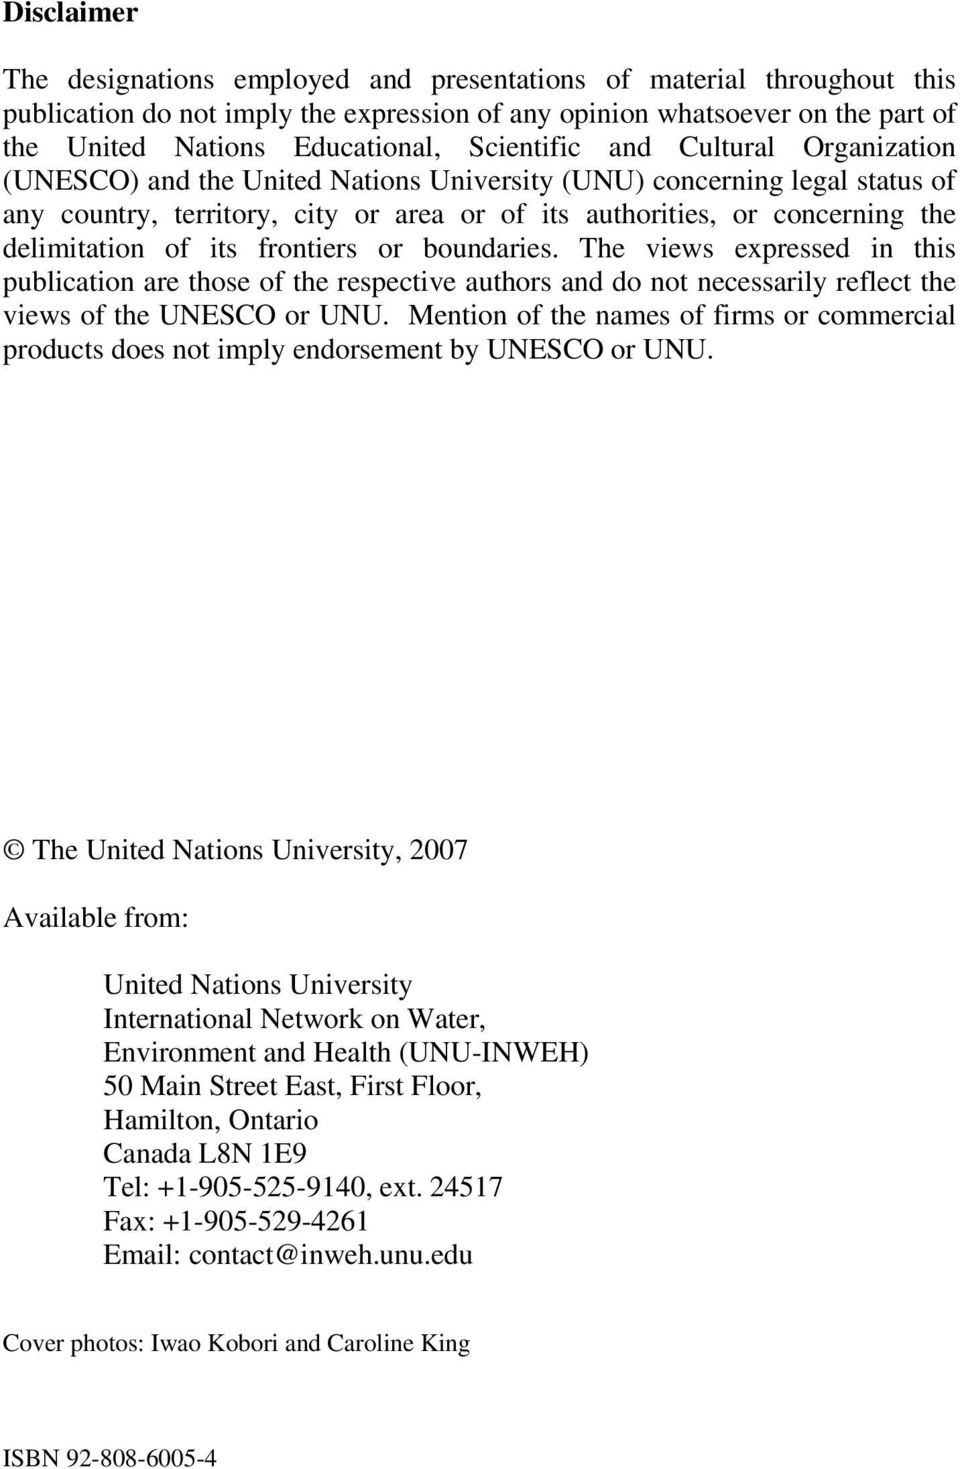 delimitation of its frontiers or boundaries. The views expressed in this publication are those of the respective authors and do not necessarily reflect the views of the UNESCO or UNU.